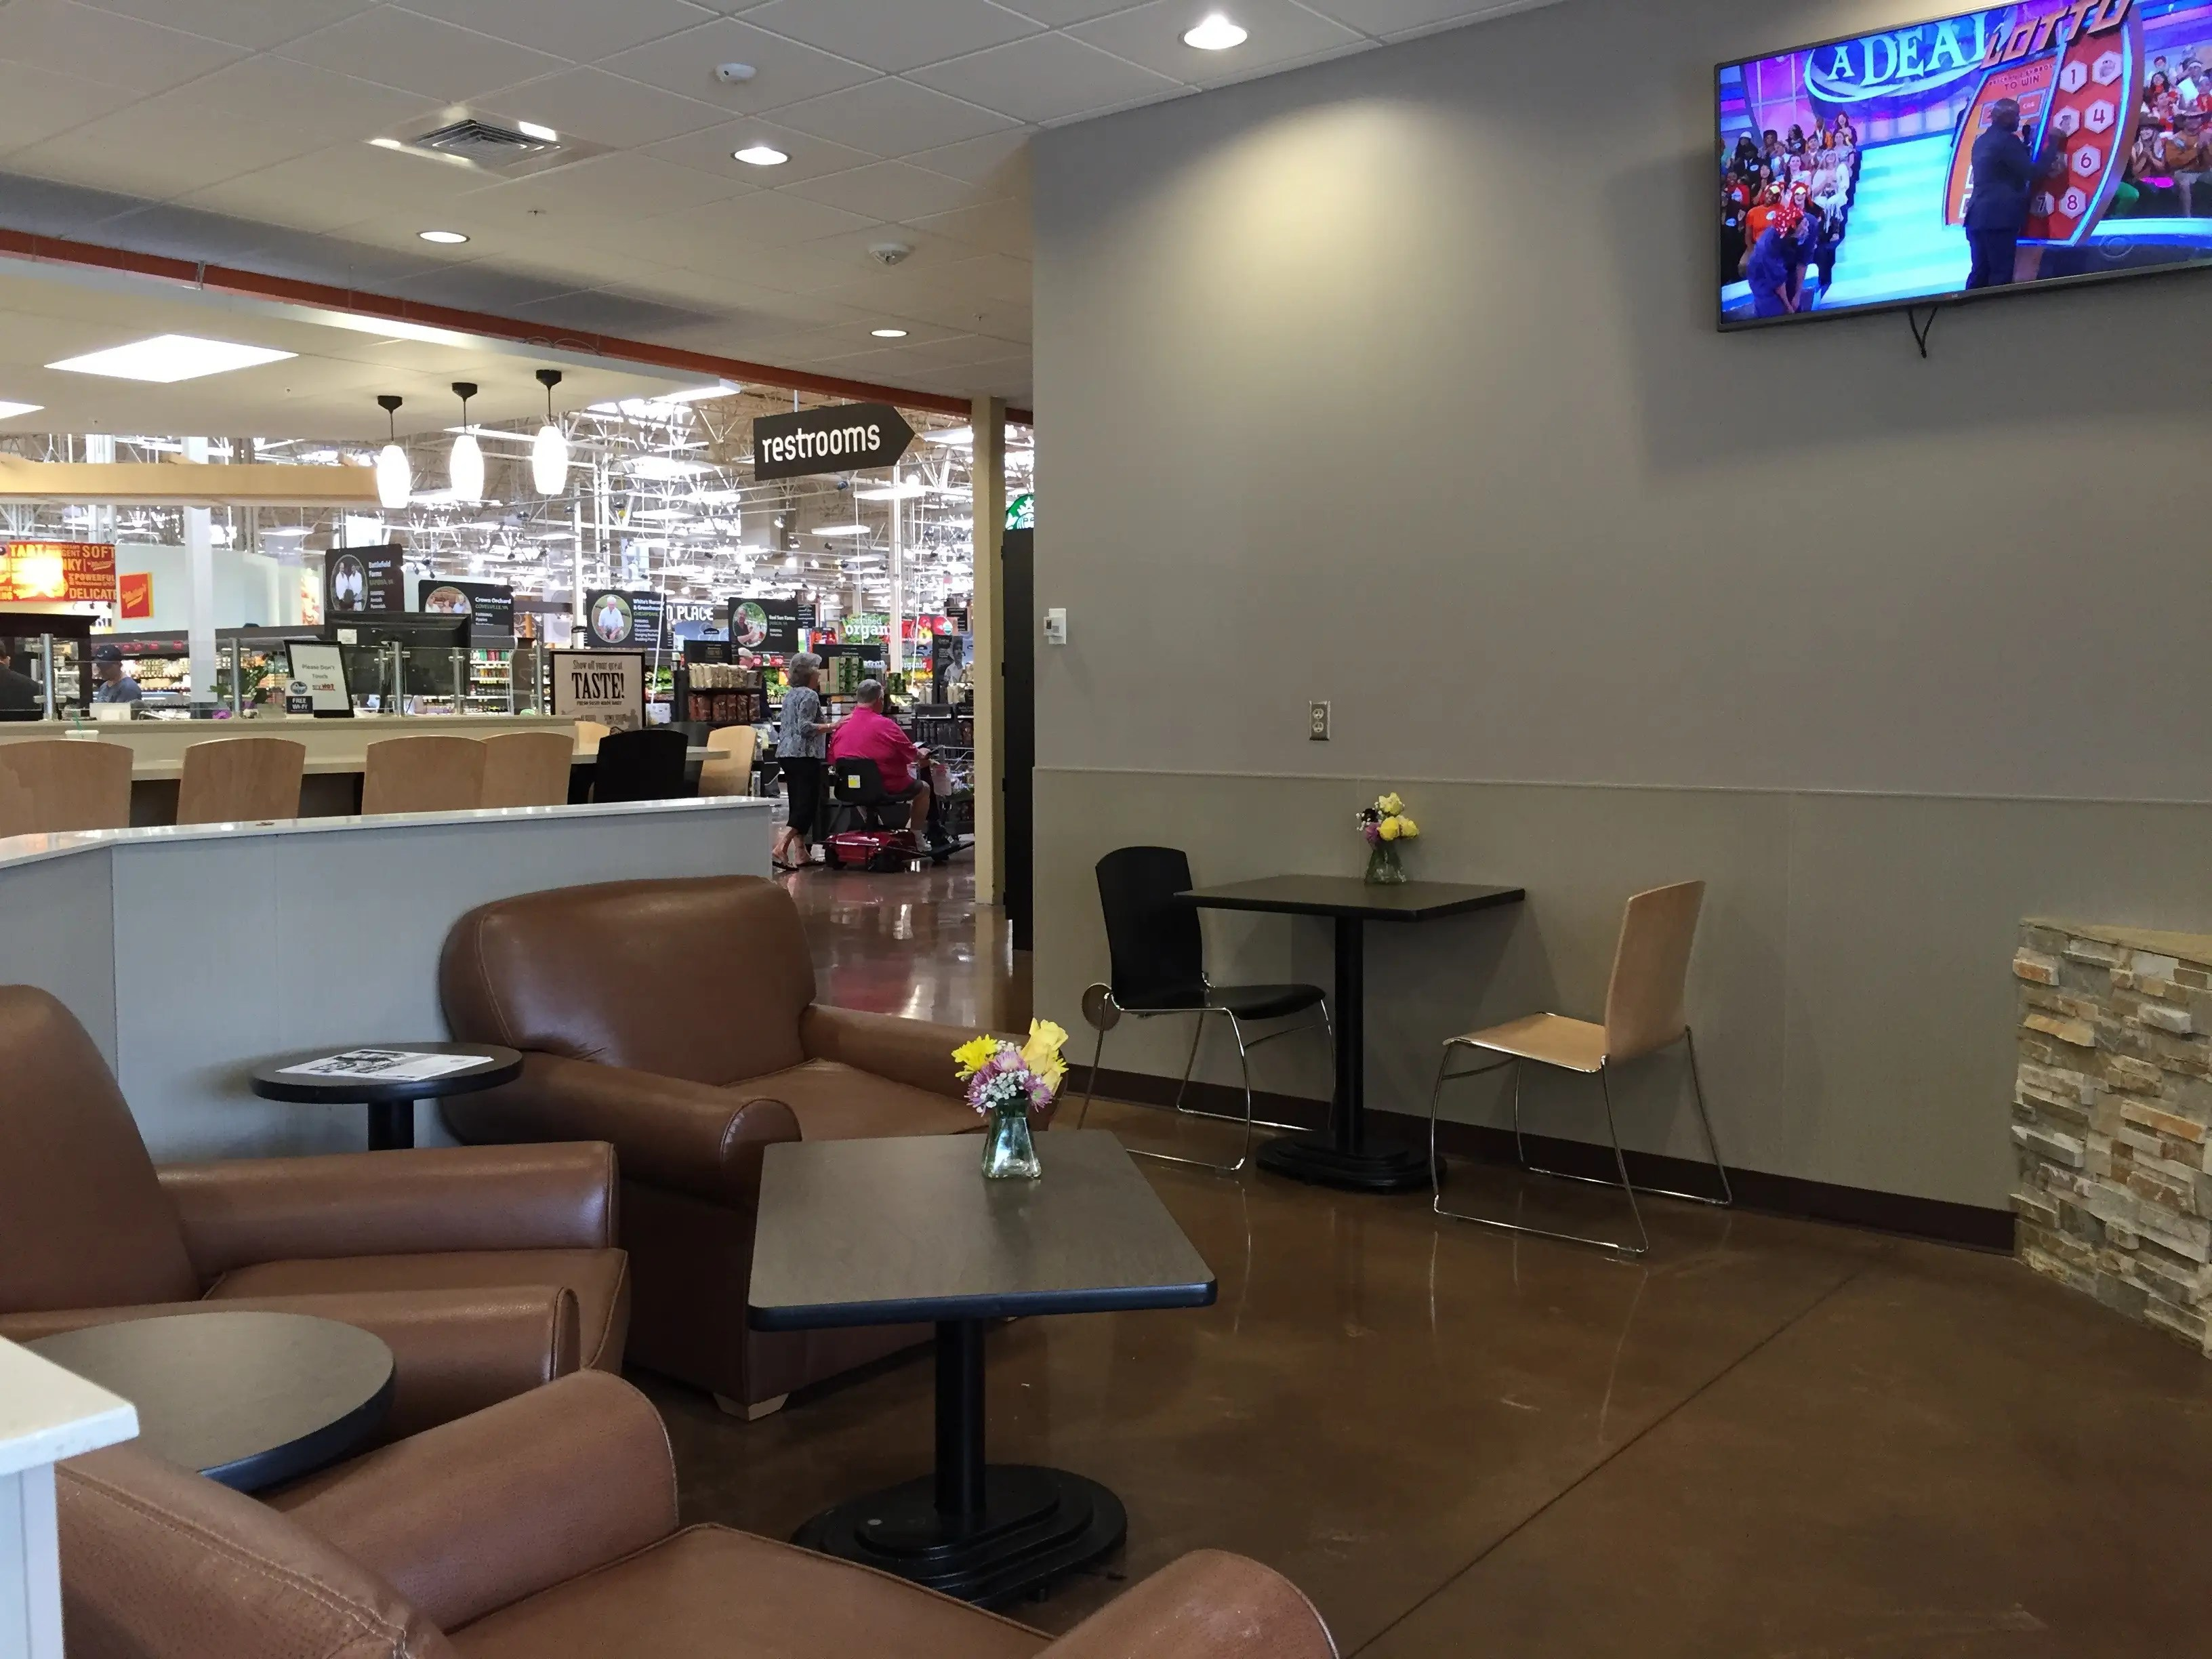 ... and the dine-in seating area features flat-screen televisions, a fireplace, and lounge chairs.